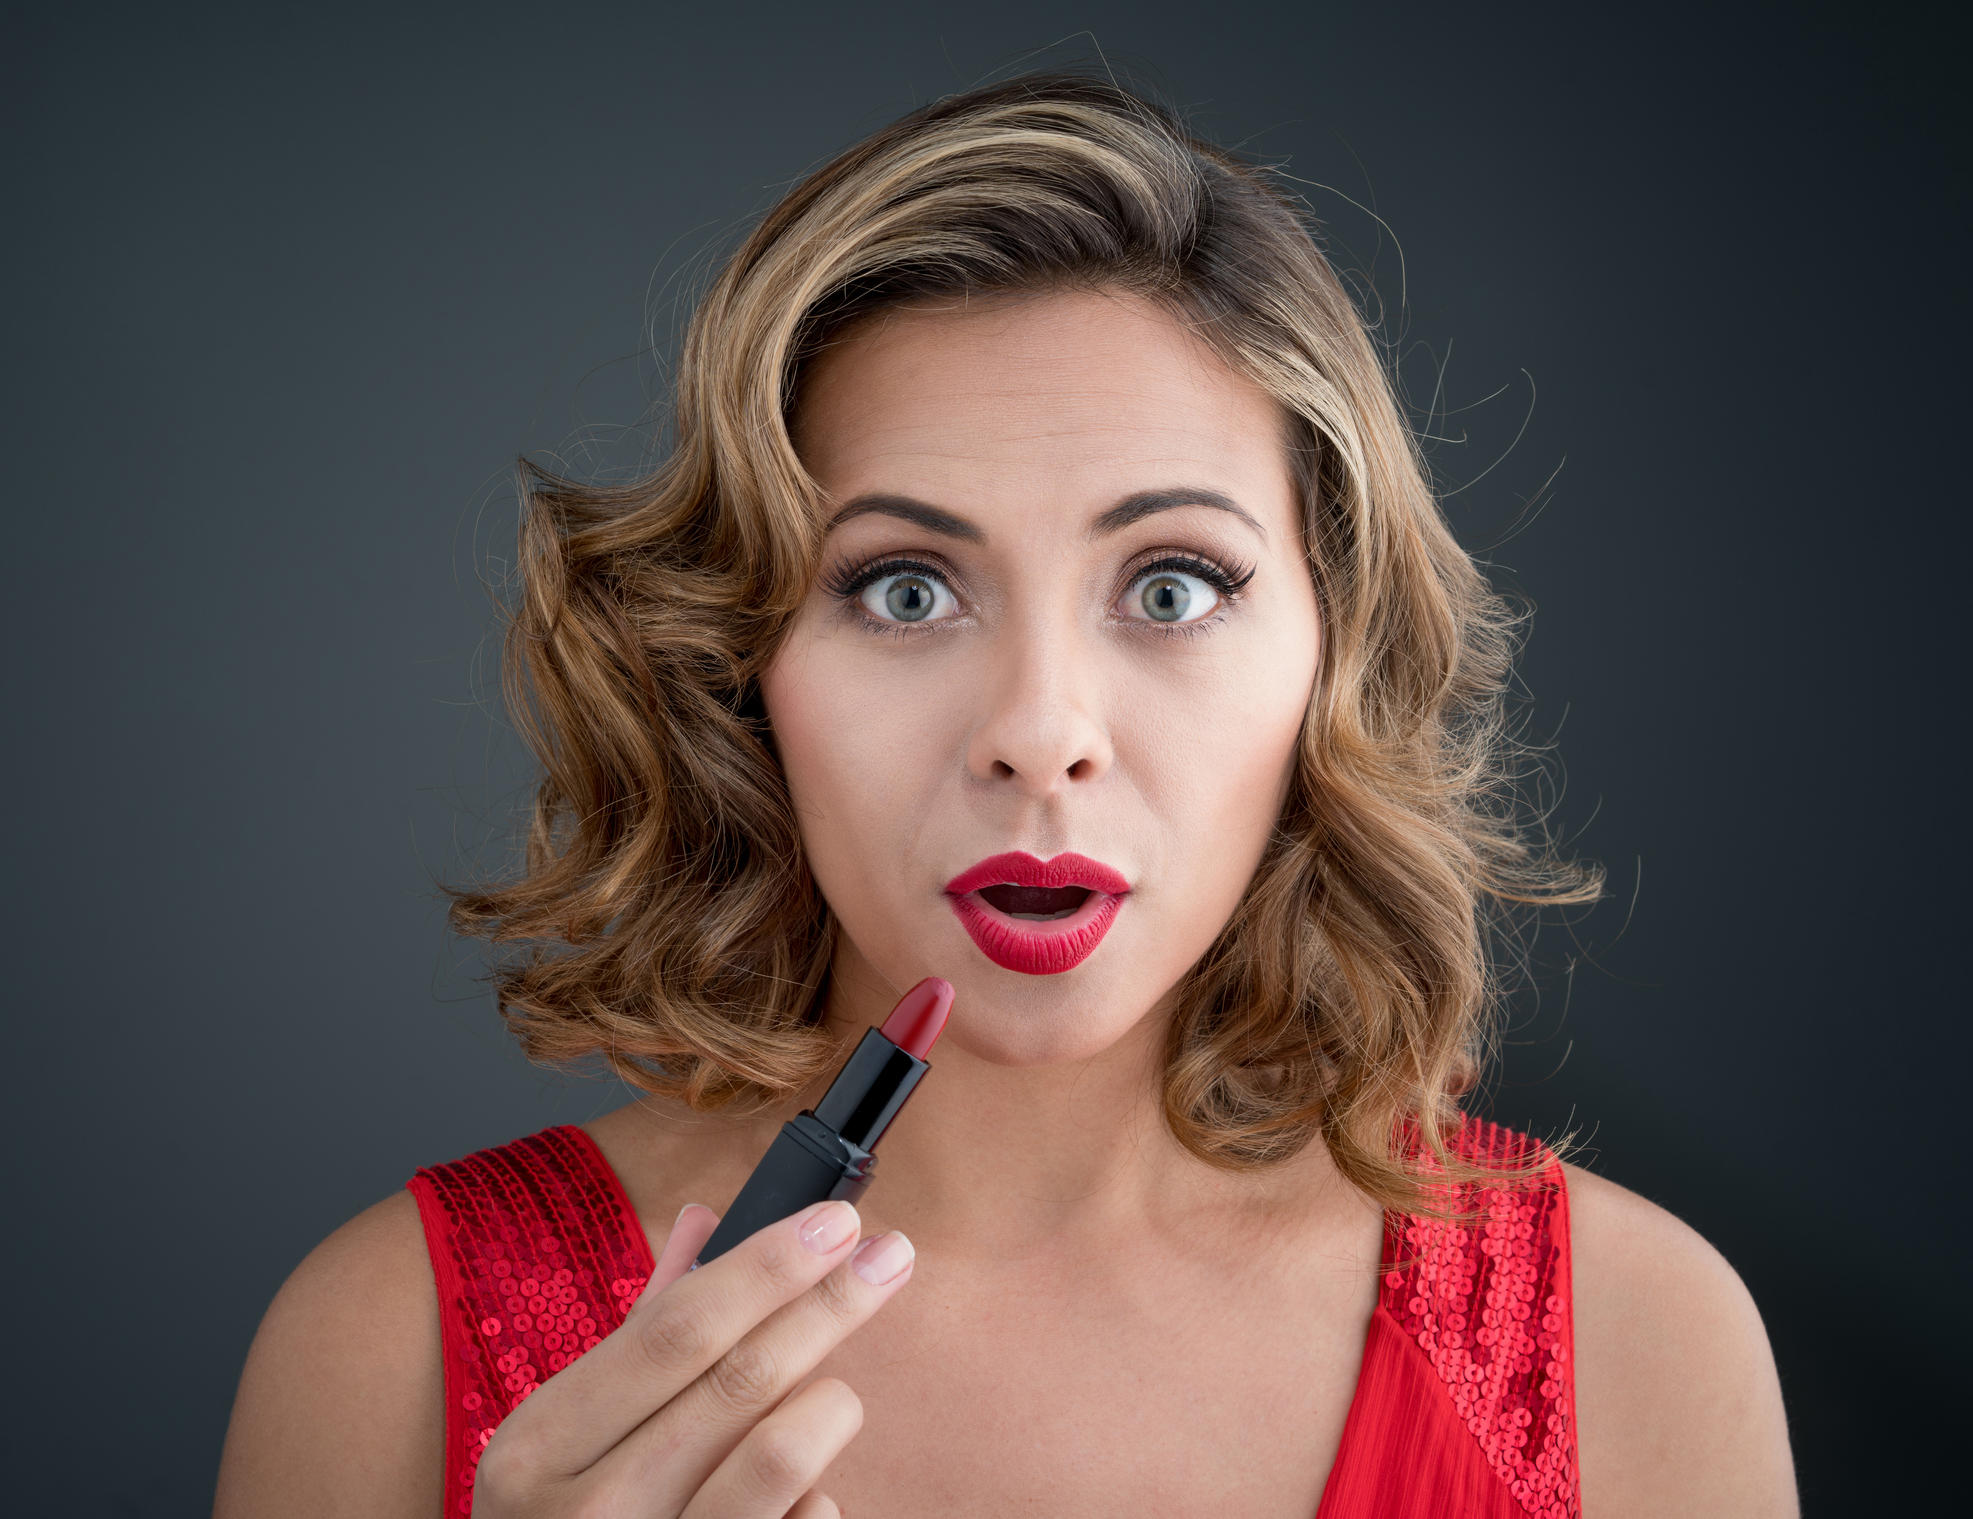 Surprised woman applying red lipstick and wearing beautiful makeup - fashion concepts